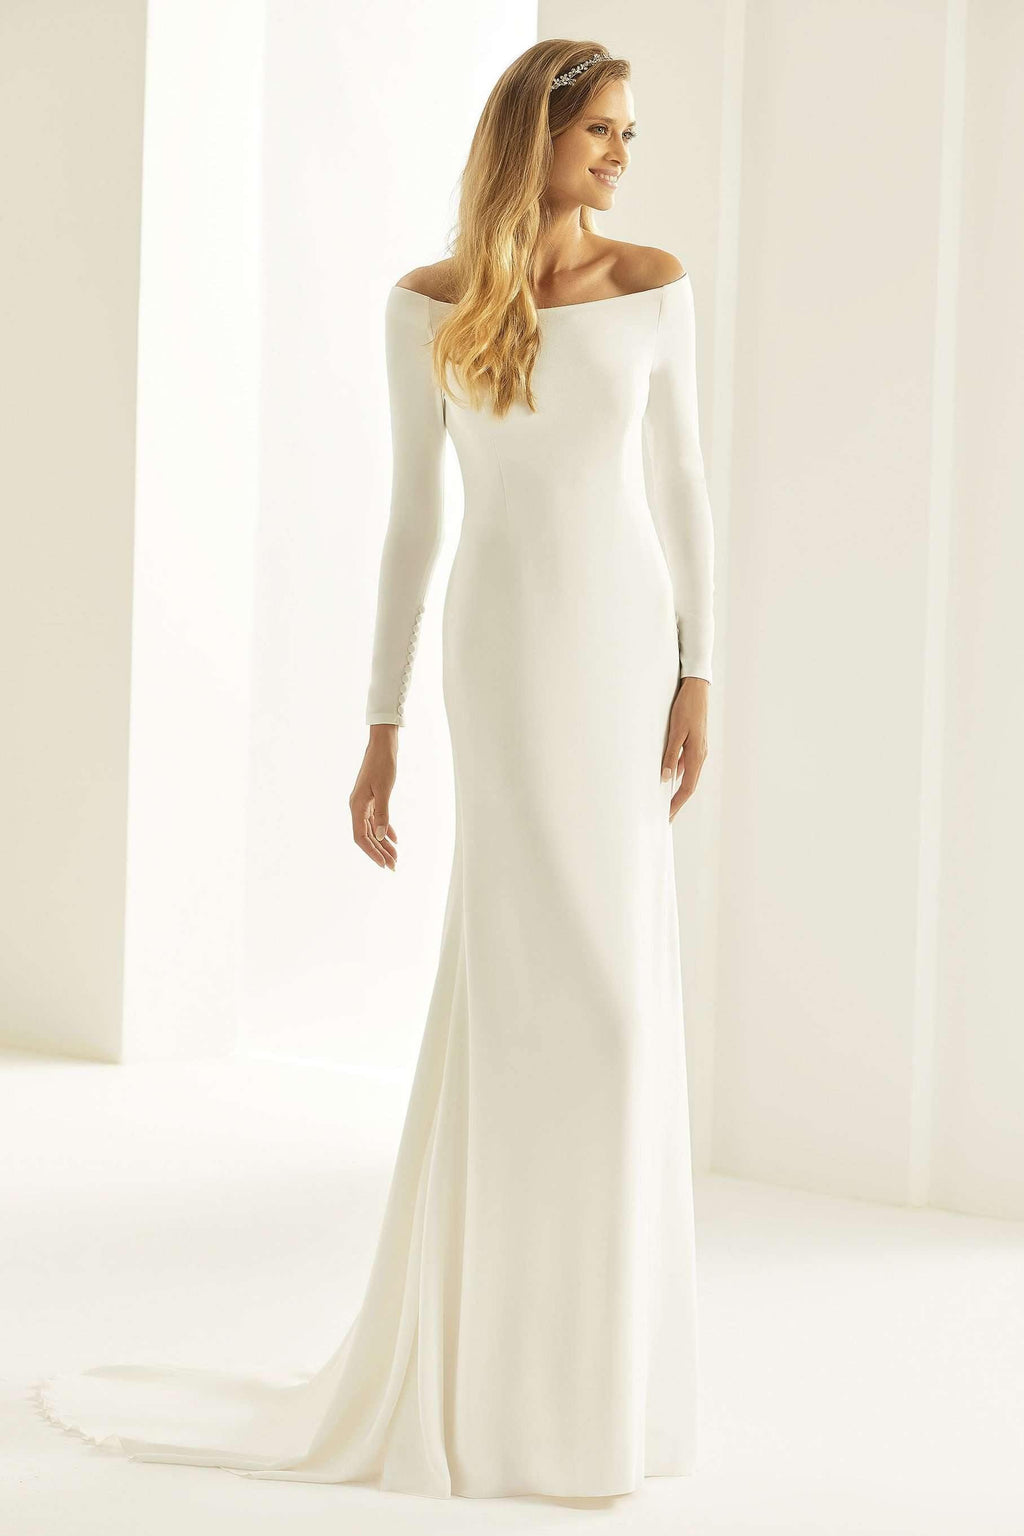 BIANCO EVENTO - Nicole - Adore Bridal and Occasion Wear